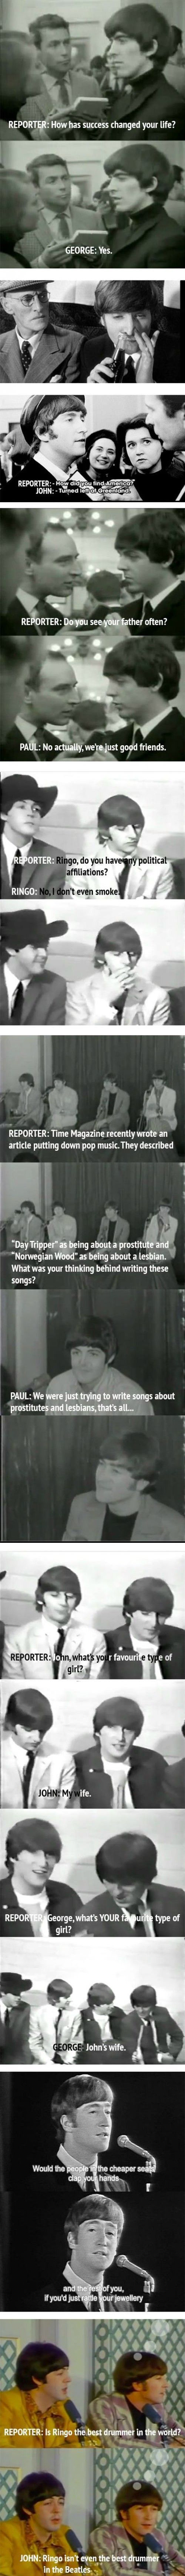 The Beatles were HILARIOUS. Fact.